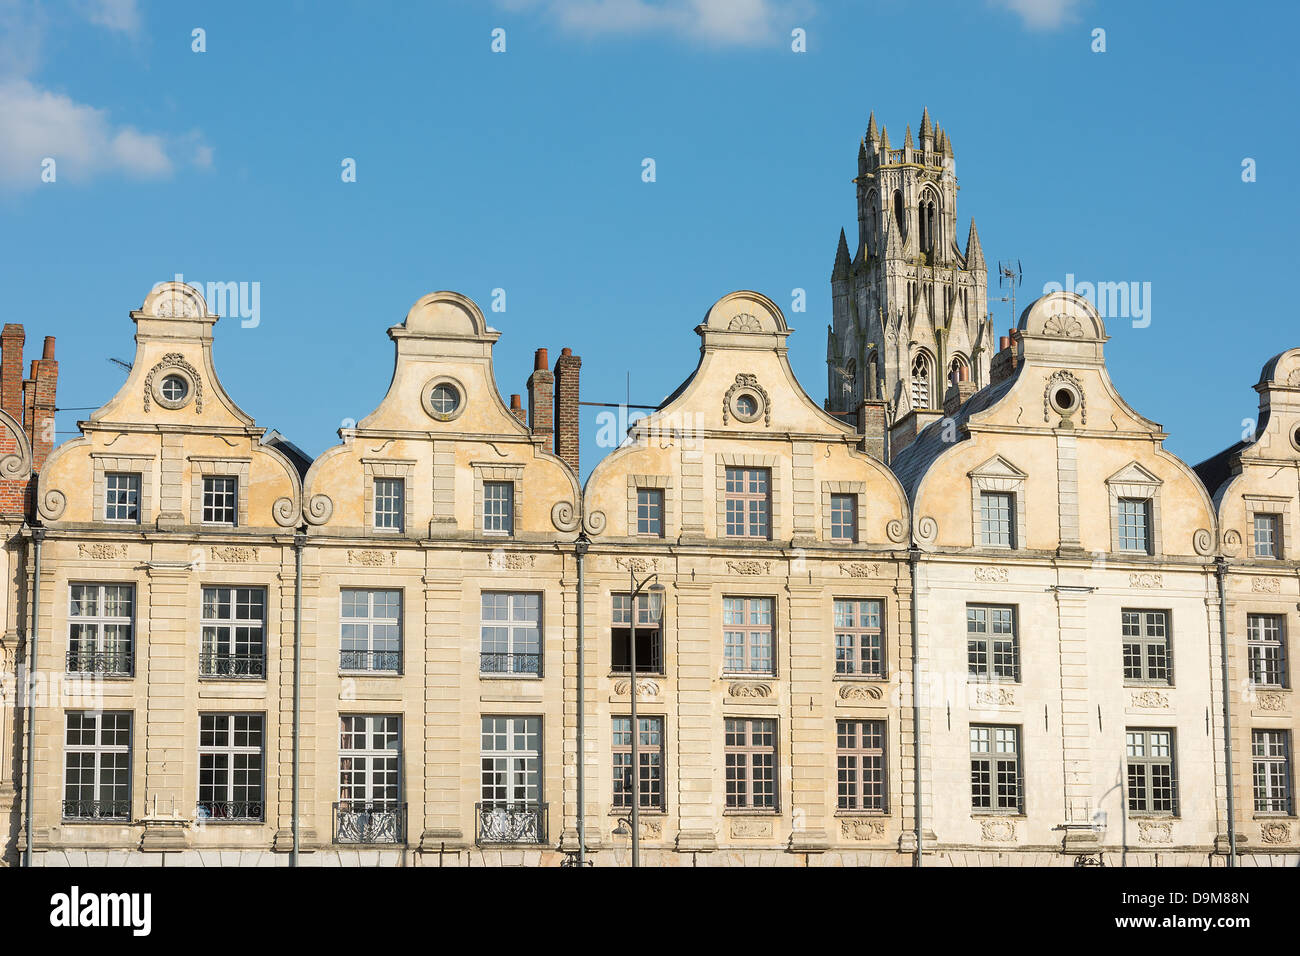 Arras France Flemish style buildings in the main square of Grande Place. - Stock Image